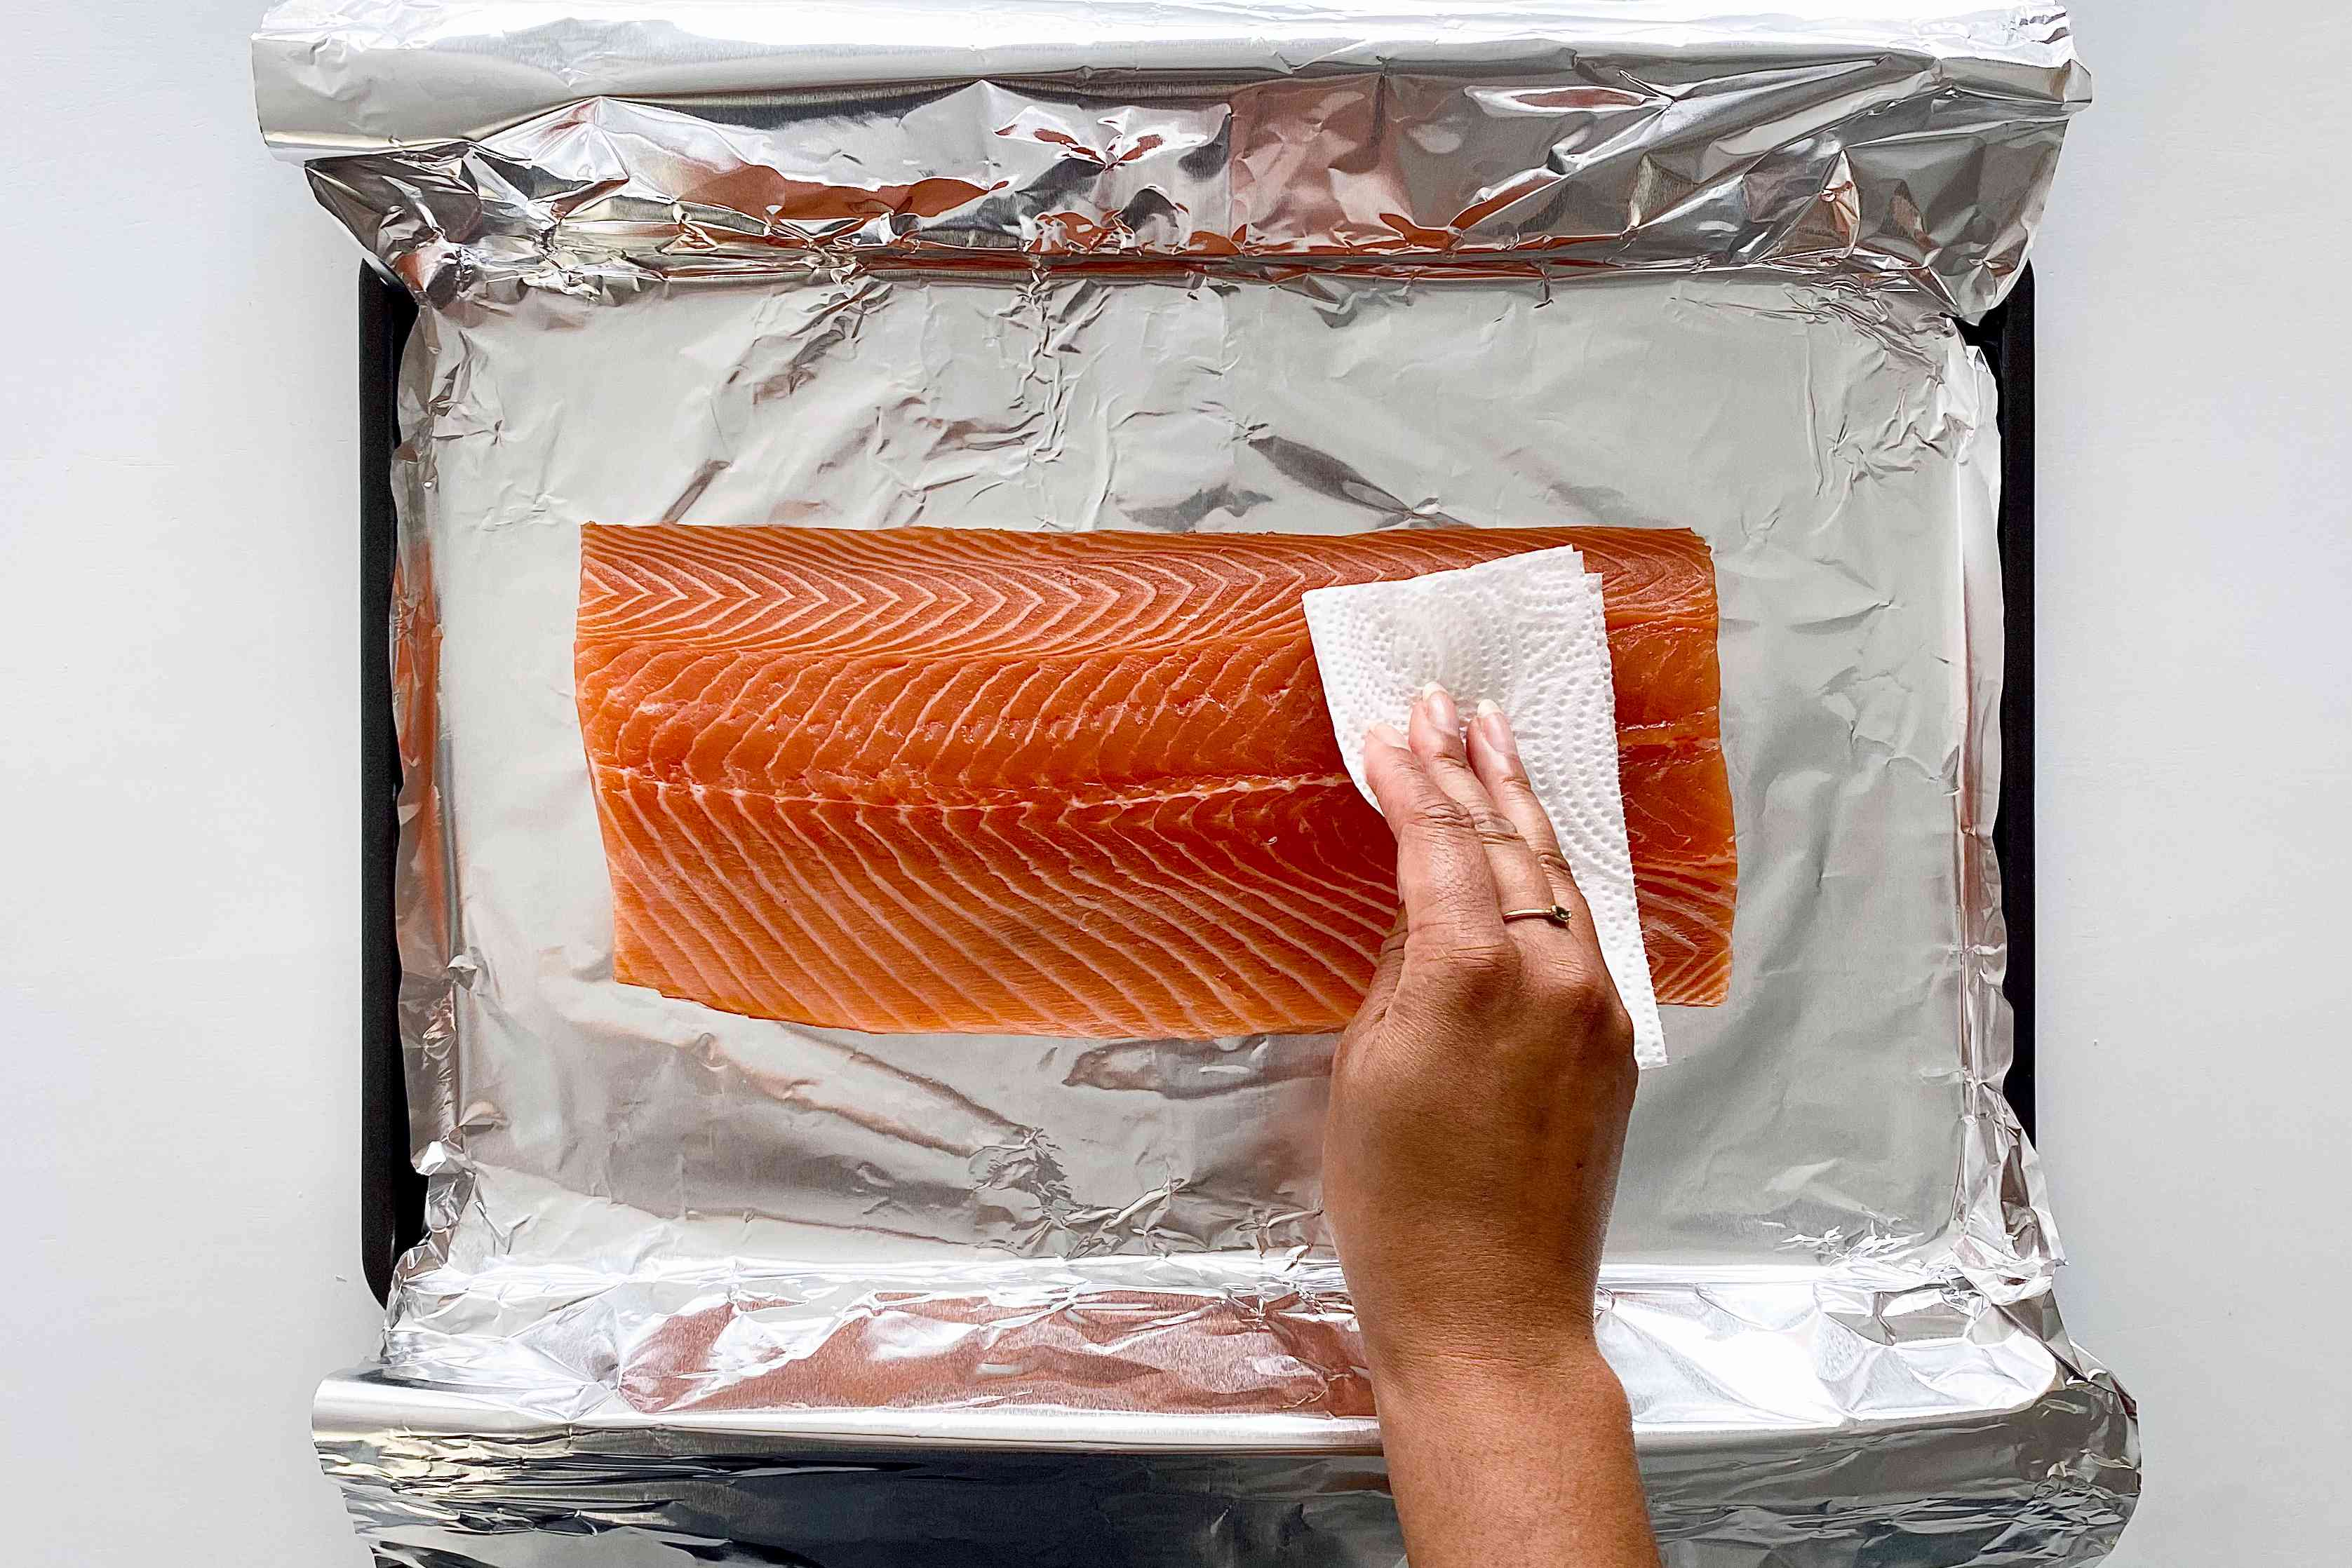 Salmon on a foil lined baking sheet to make Garlic Butter Baked Salmon.